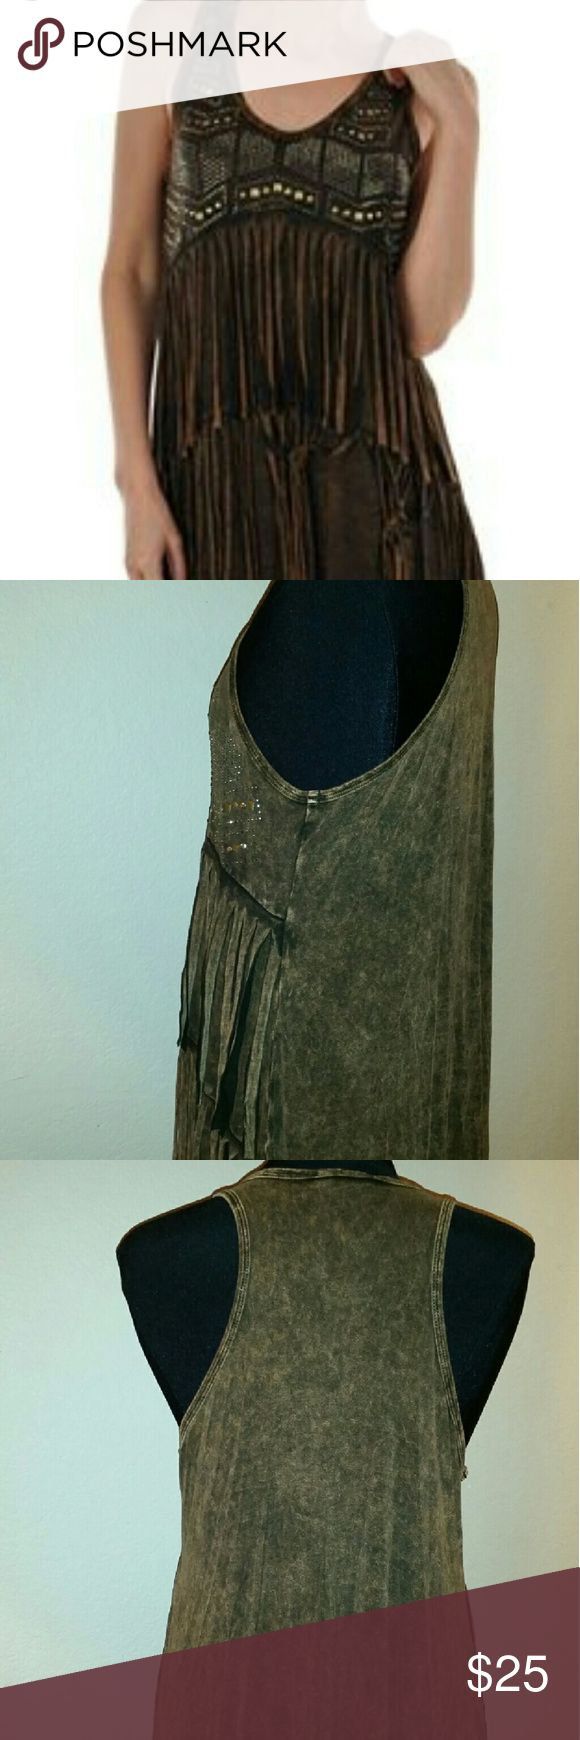 "T PARTY FRINGE TANK TOP NWT HOT HOT HOT,  Boho look, bike week or the beach, this two tone fringe tank is a must.  Measures 28"" length x 19"" chest T PARTY Tops Tank Tops"